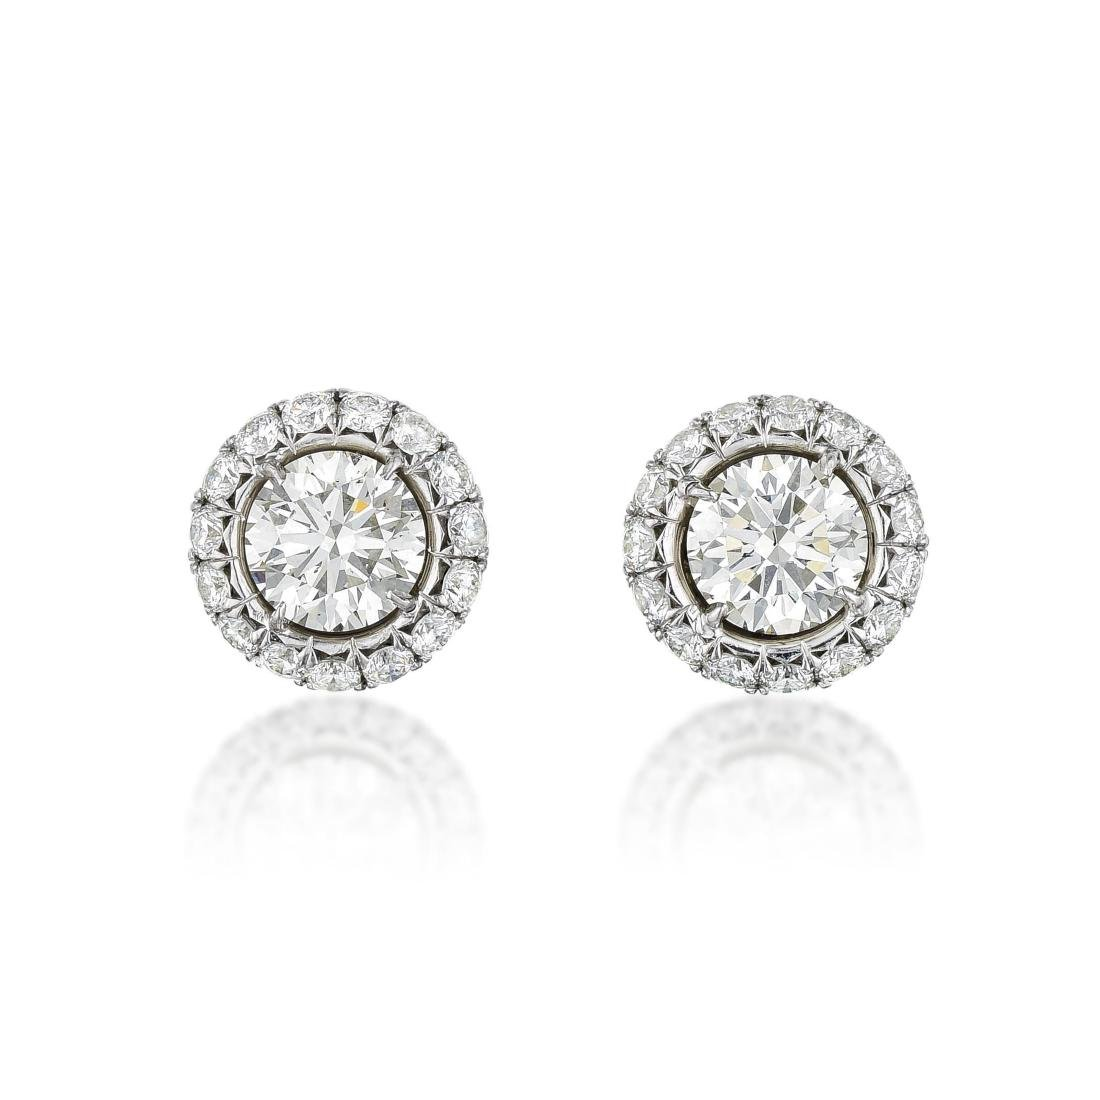 A Pair of Platinum Diamond Stud Earrings